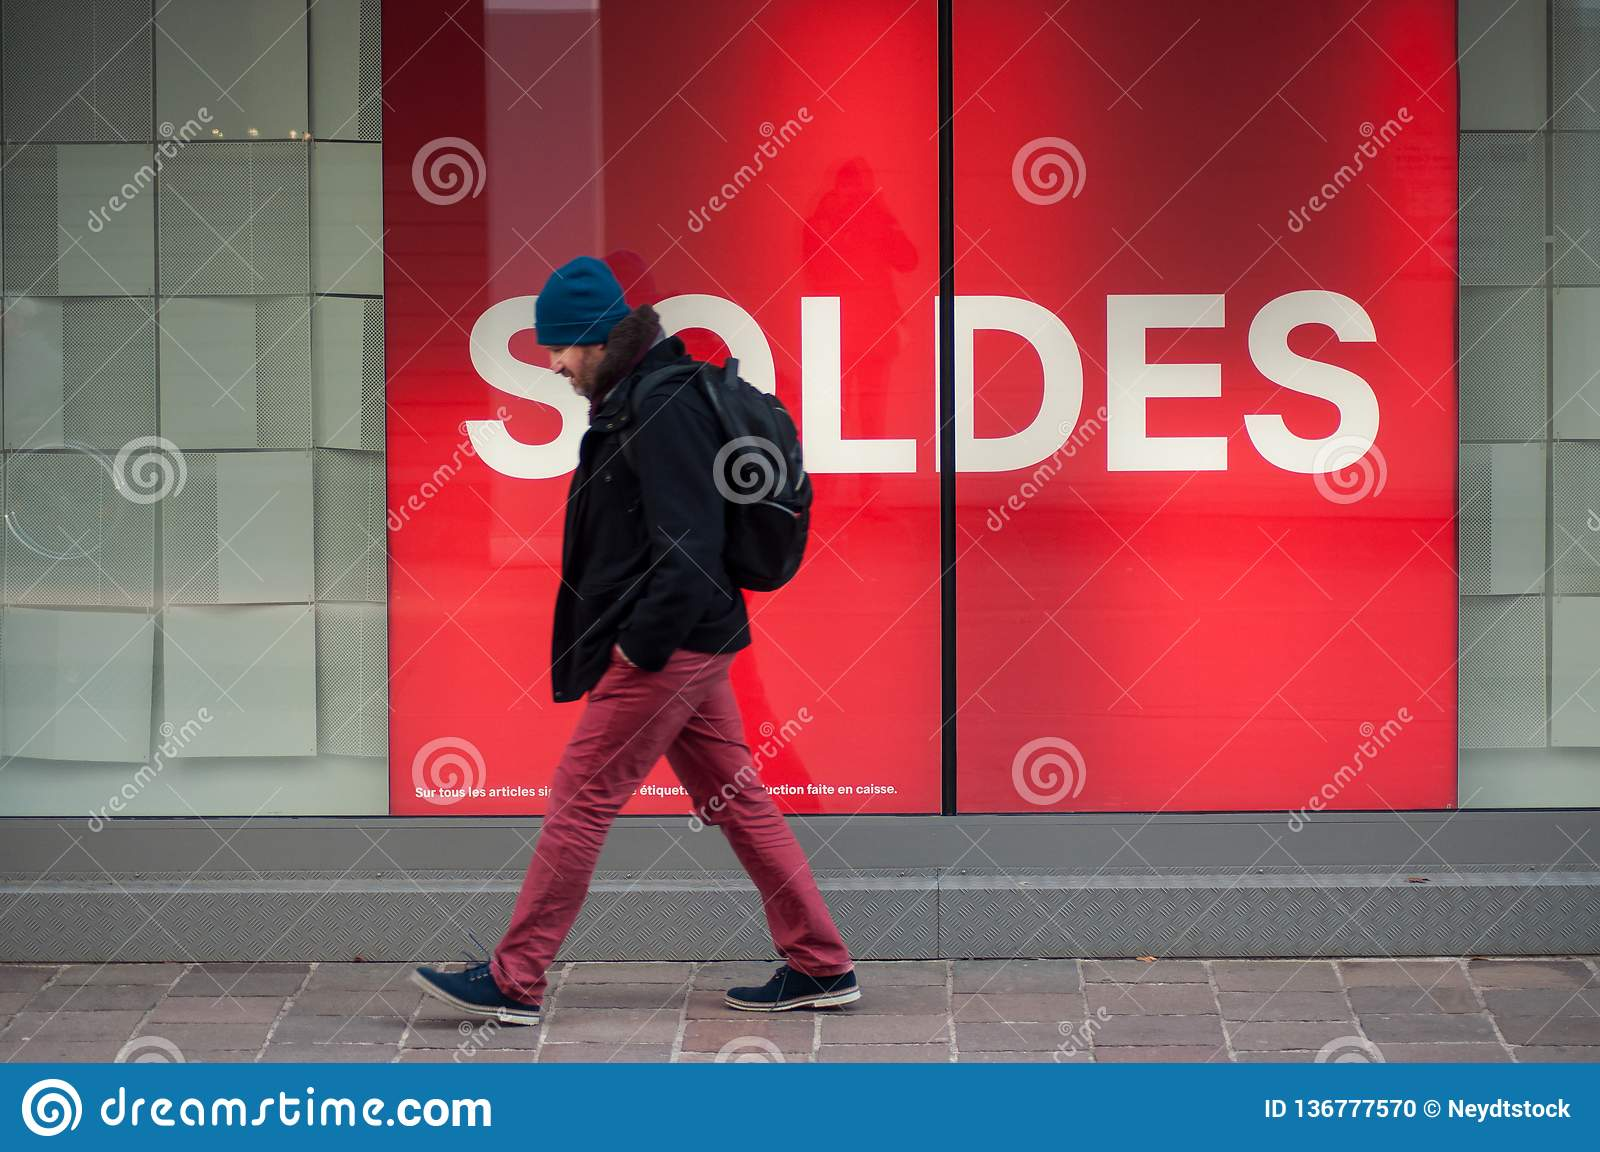 https www dreamstime com mulhouse france january portrait man walking street front fashion store text french soldes traduction english sales image136777570